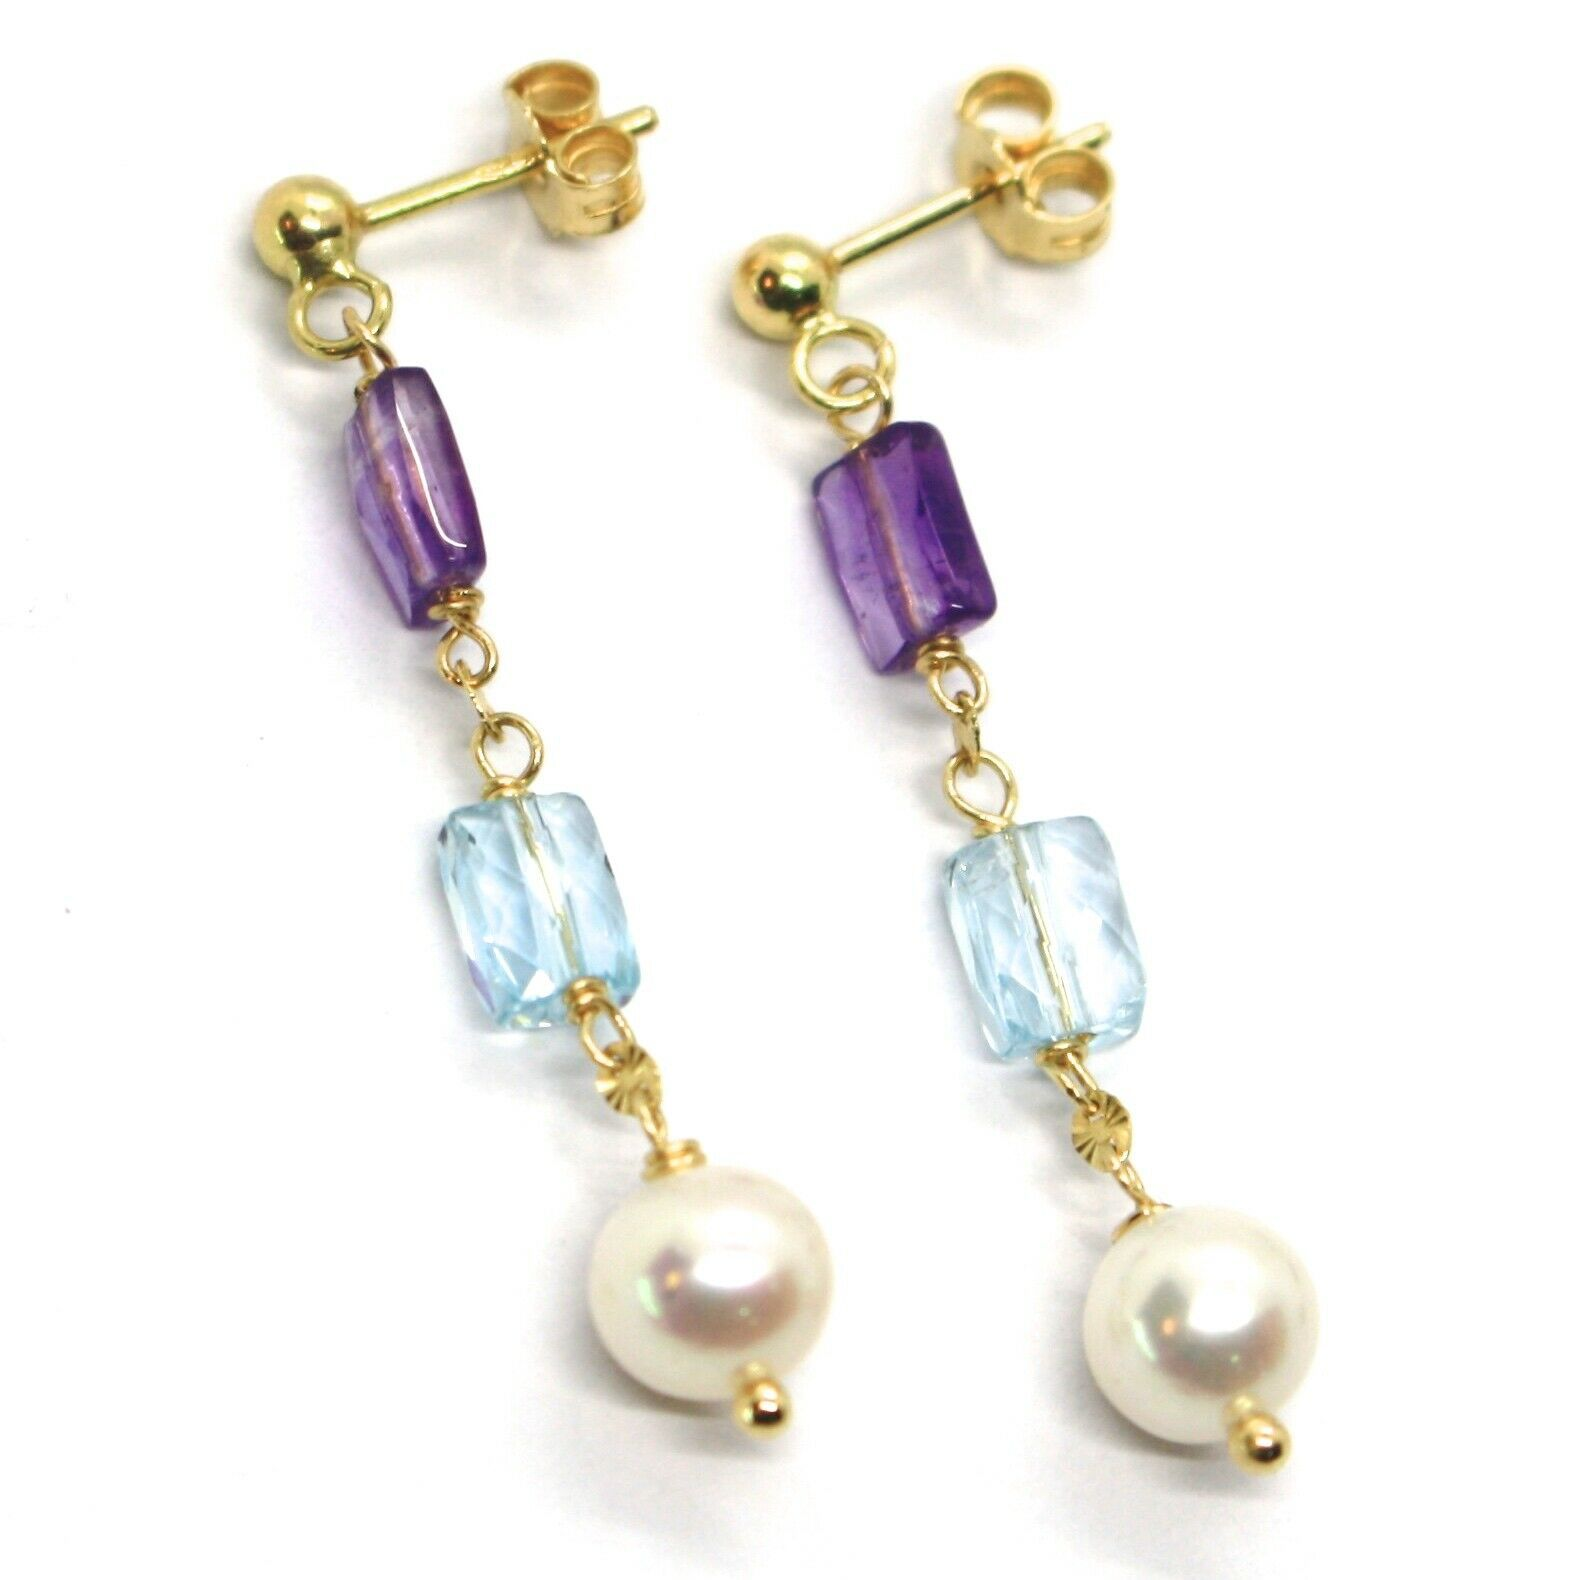 18K YELLOW GOLD PENDANT EARRINGS, PEARL, BLUE TOPAZ, AMETHYST, 1.54 INCHES